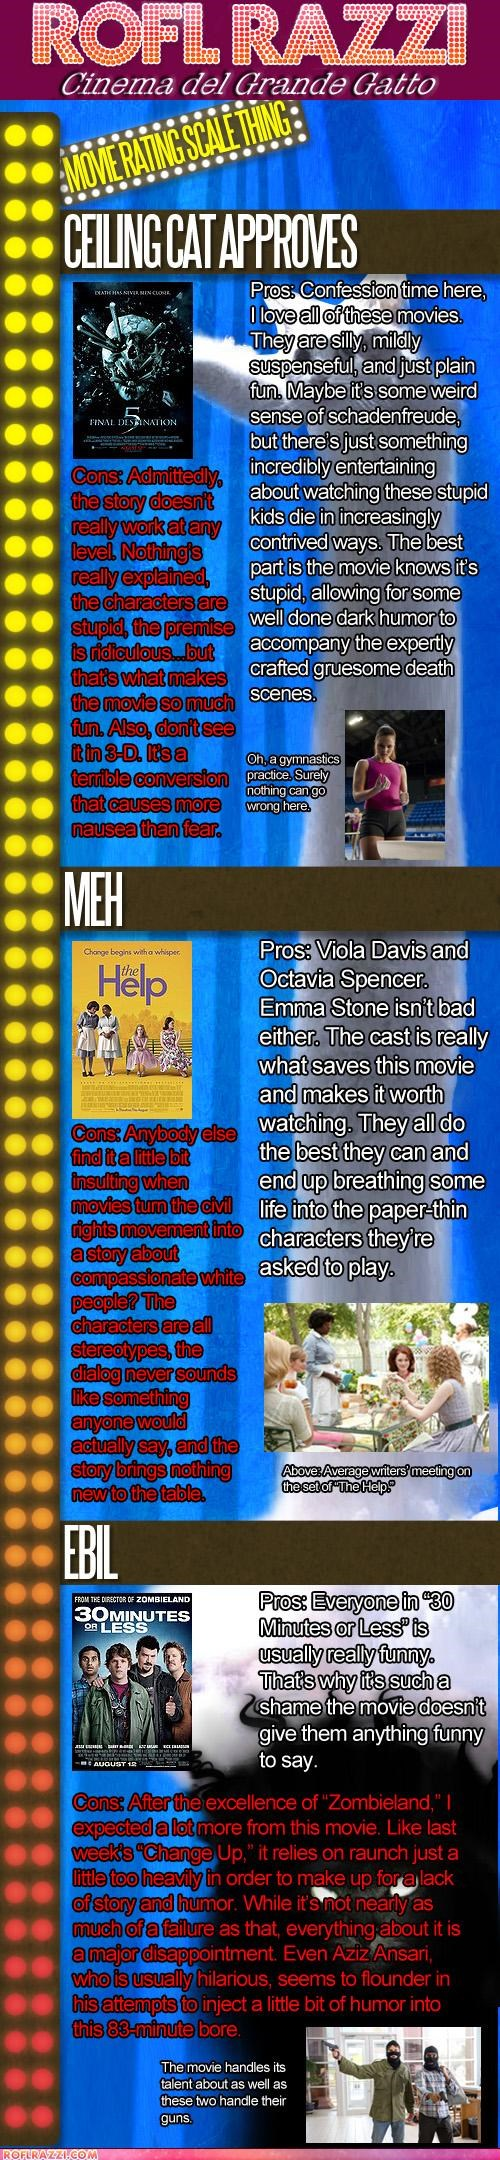 30 minutes or less aziz ansari cinema emma stone Final Destination movies octavia spencer reviews the help viola davis Zombieland - 5081608448